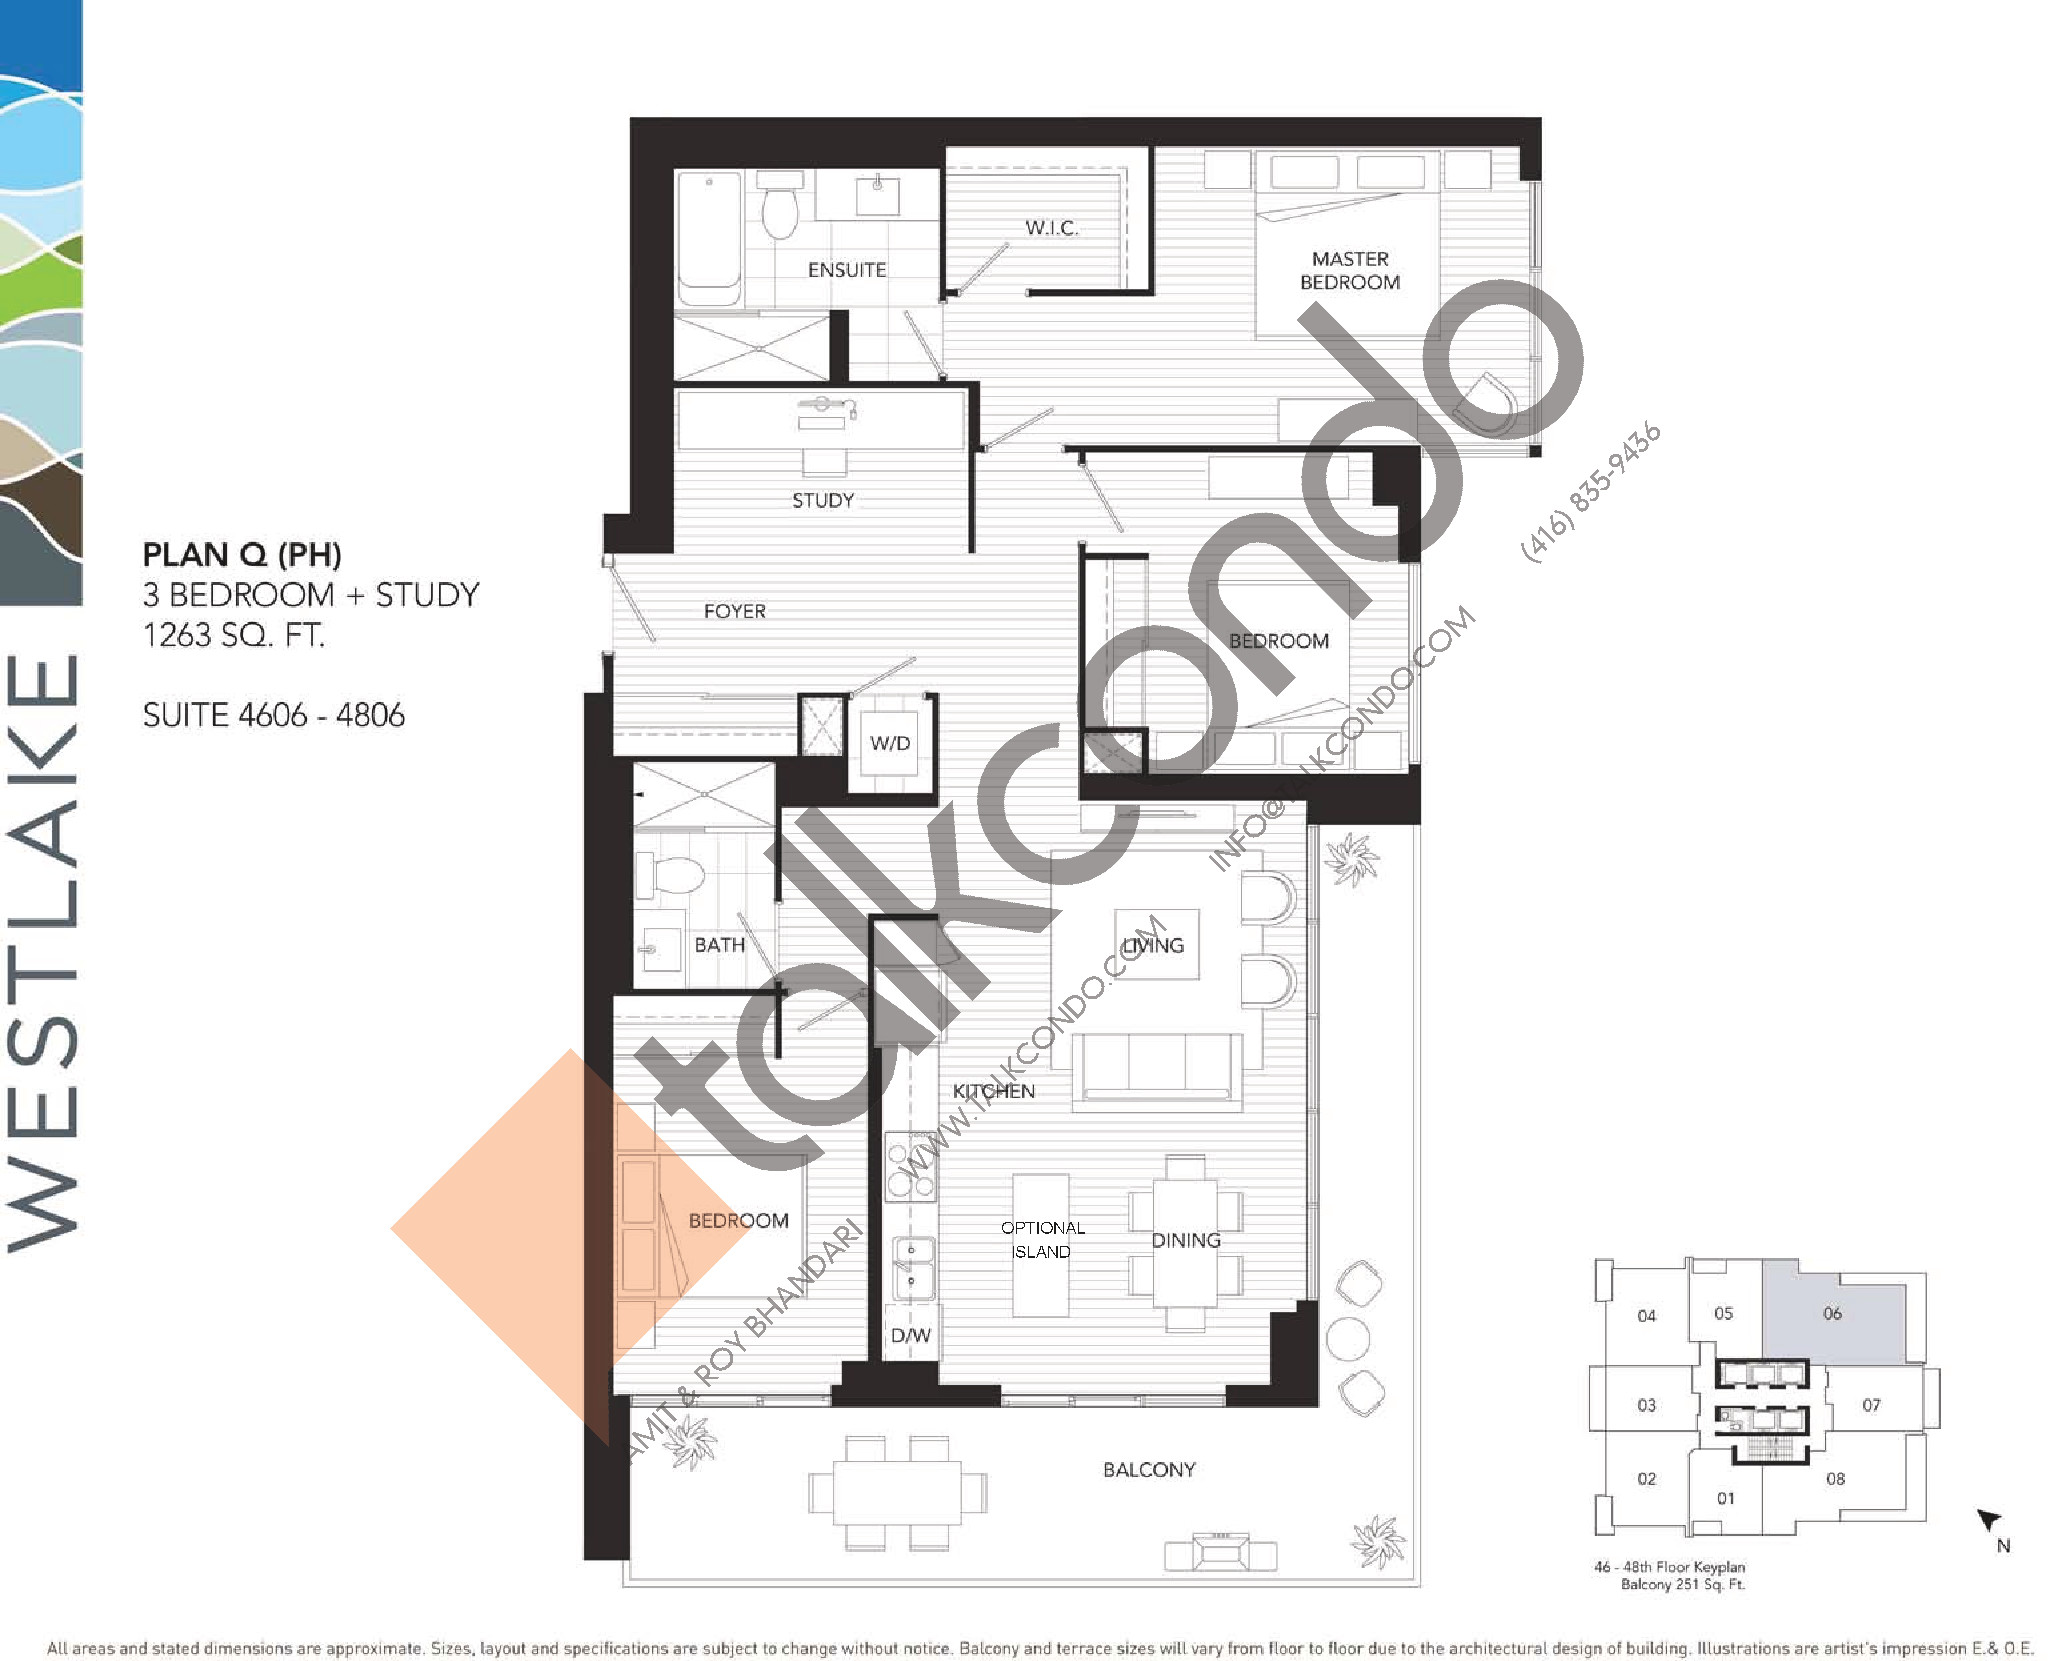 westlake phase 1 condos talkcondo. Black Bedroom Furniture Sets. Home Design Ideas